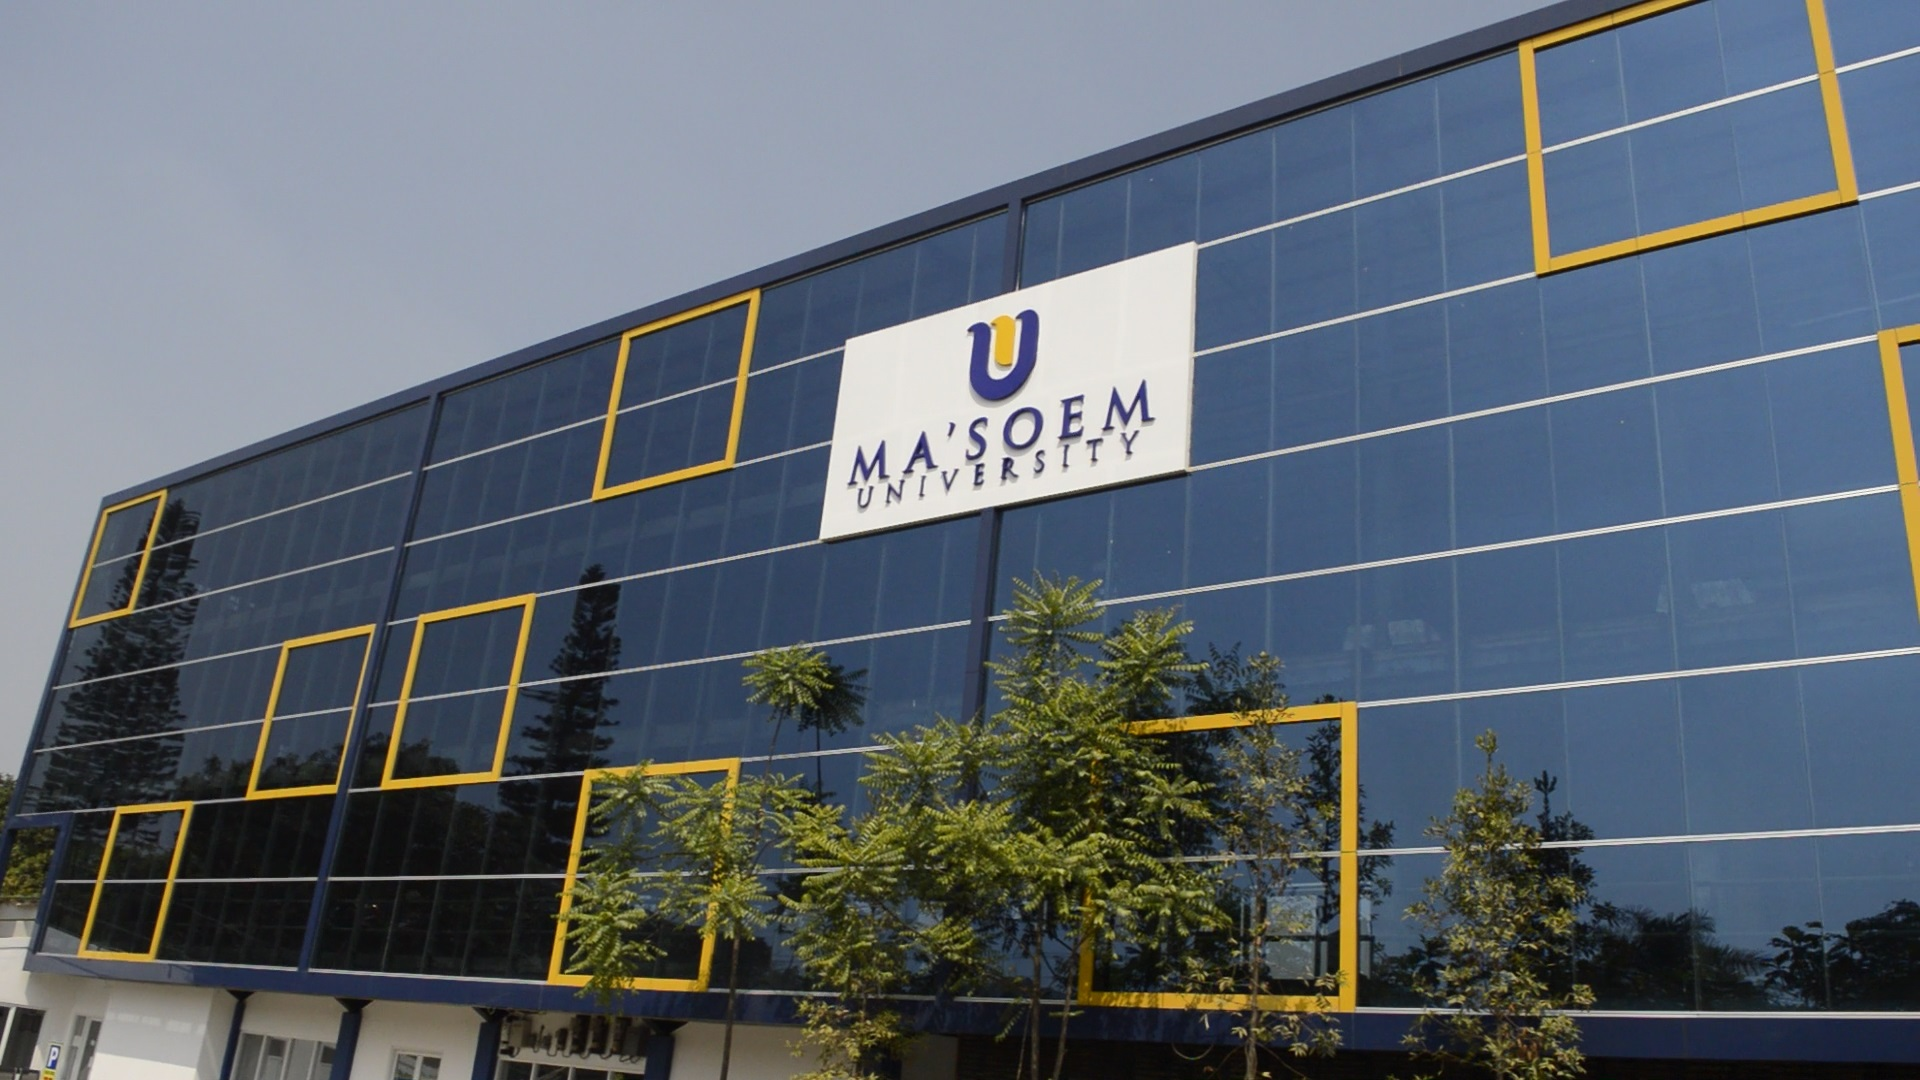 Profile Ma'soem University (Segmen 1)